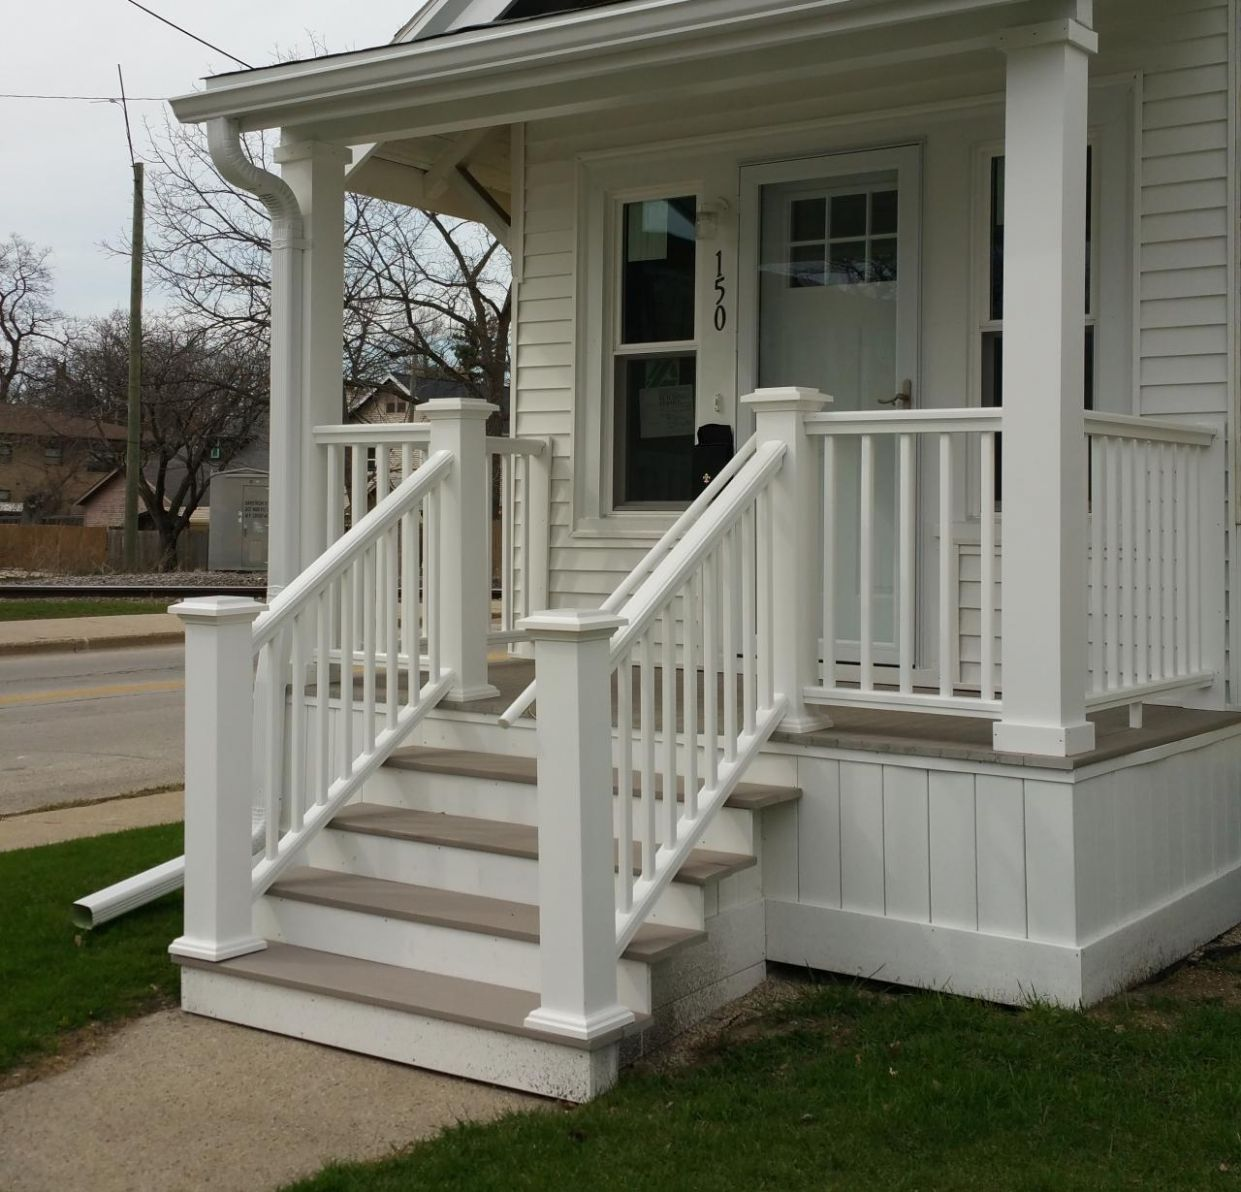 Front Porch Ideas With Columns - front porch ideas with columns